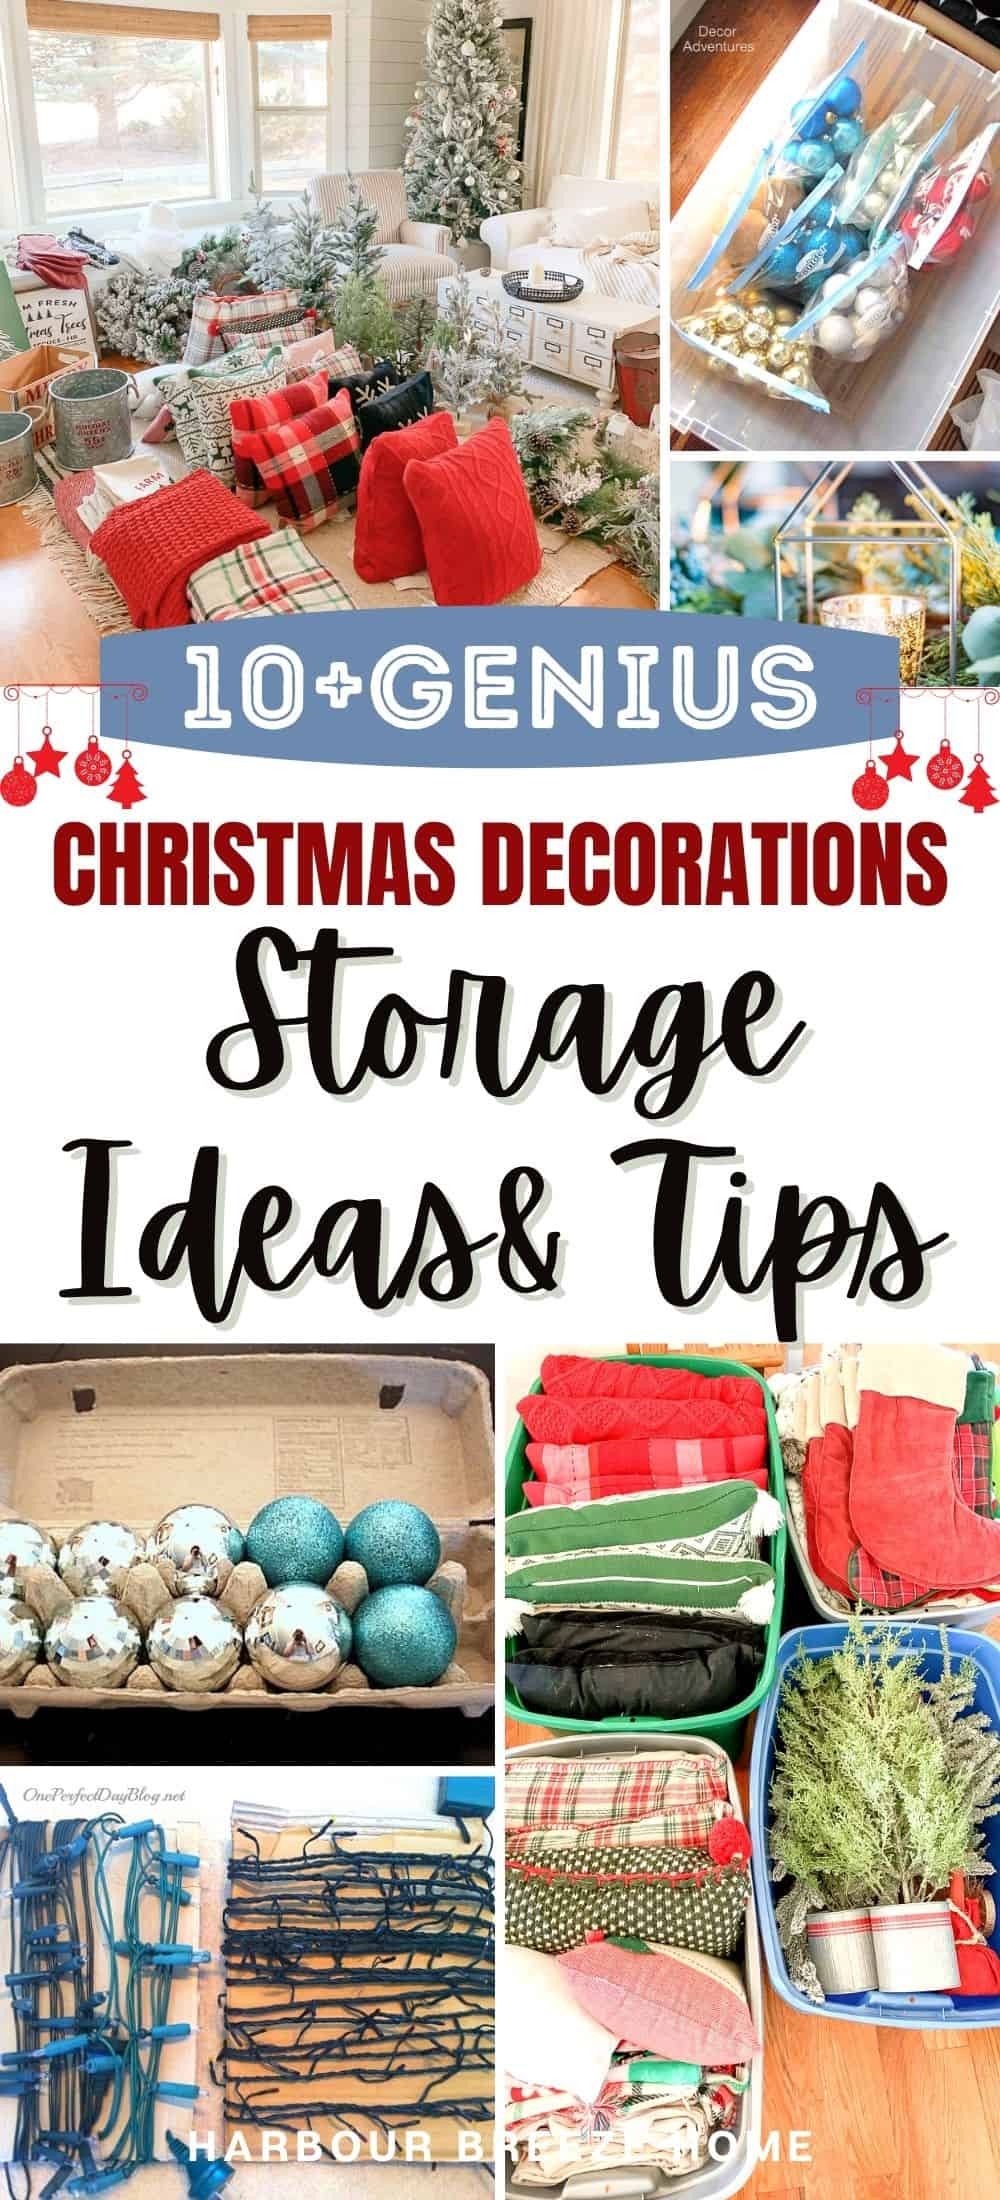 Christmas decoration storage ideas & tips